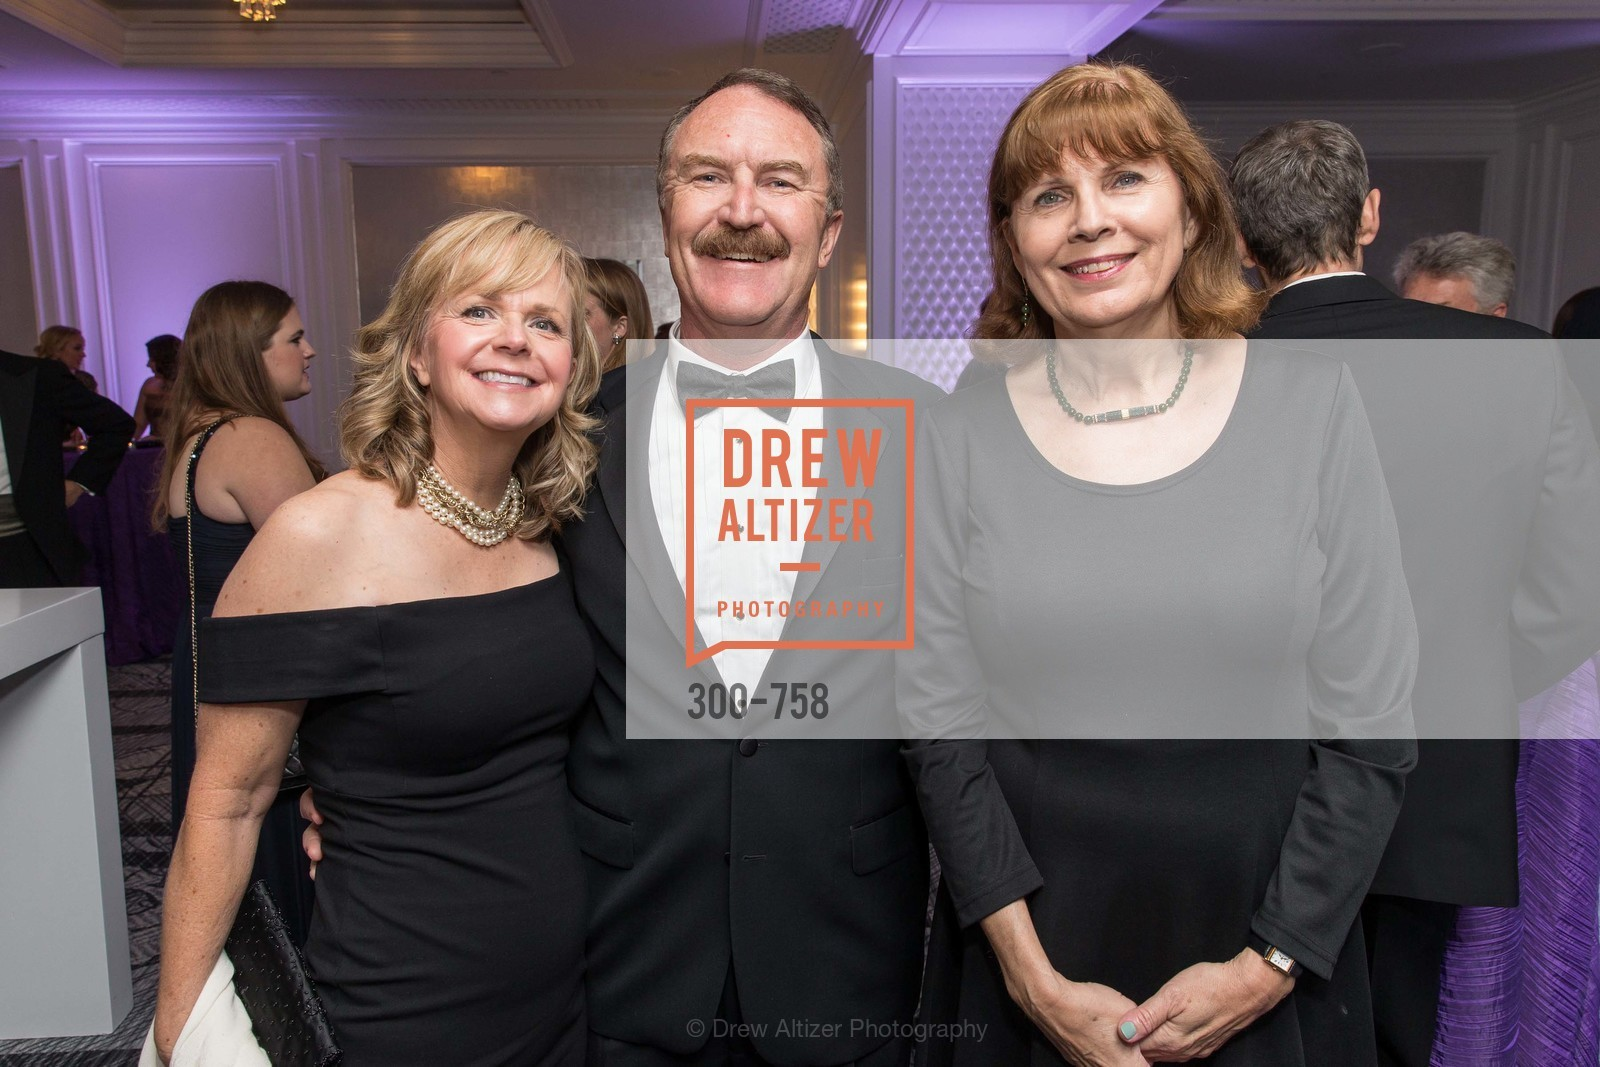 Vickie Mallon, Tom Mallon, Julie Rickert, JUVENILE DIABETES RESEARCH FOUNDATION  Hope Gala, US, May 30th, 2015,Drew Altizer, Drew Altizer Photography, full-service agency, private events, San Francisco photographer, photographer california